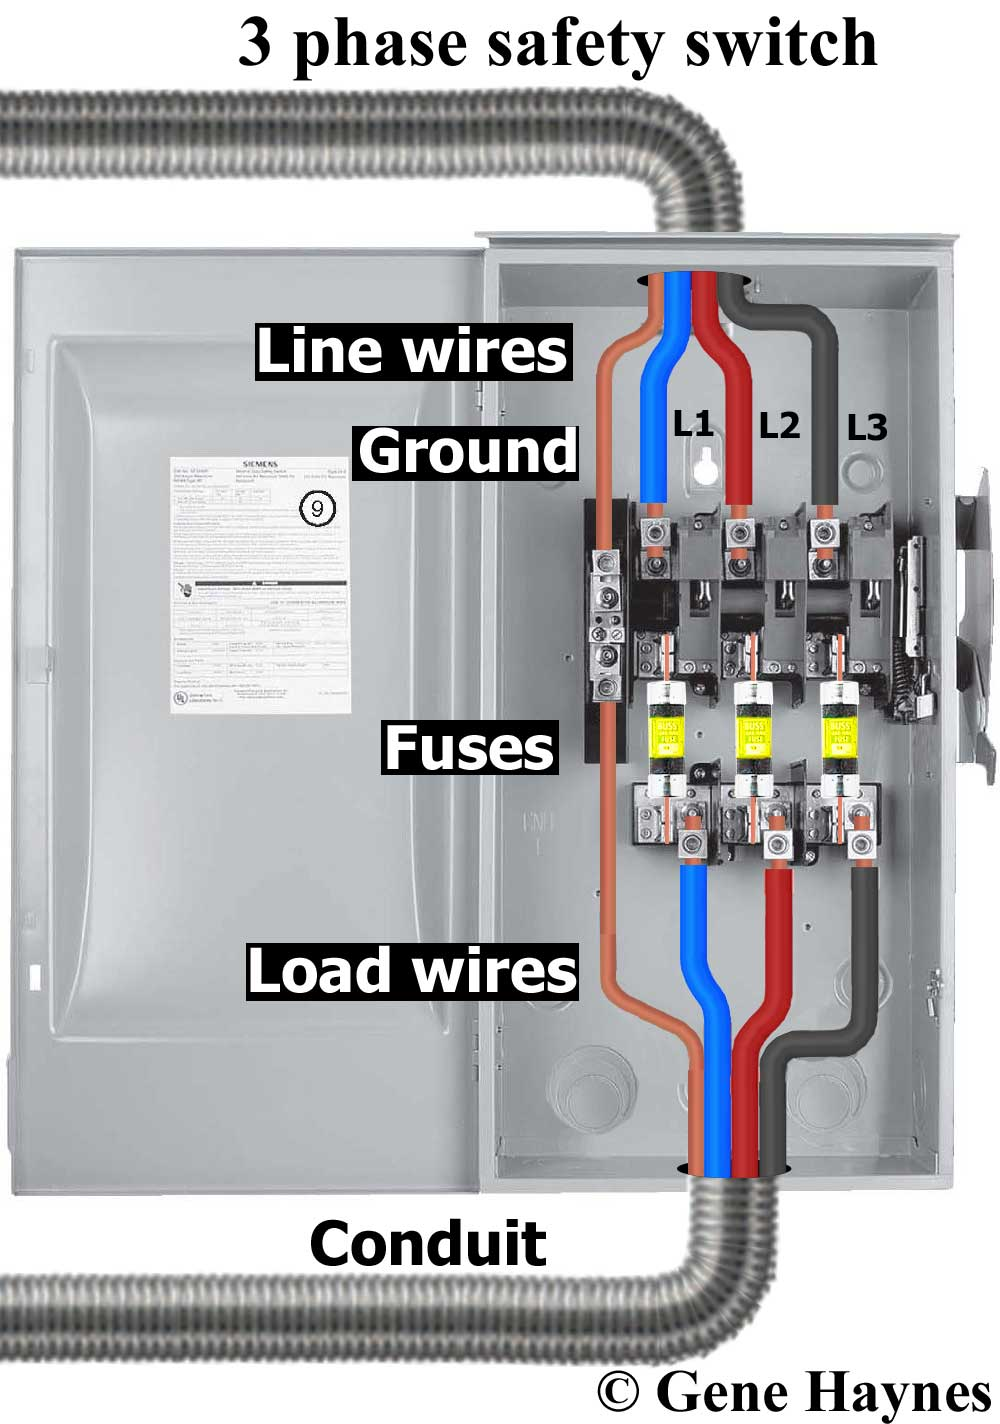 Double Throw Safety Switch Wiring Diagram - Trusted Wiring Diagram •